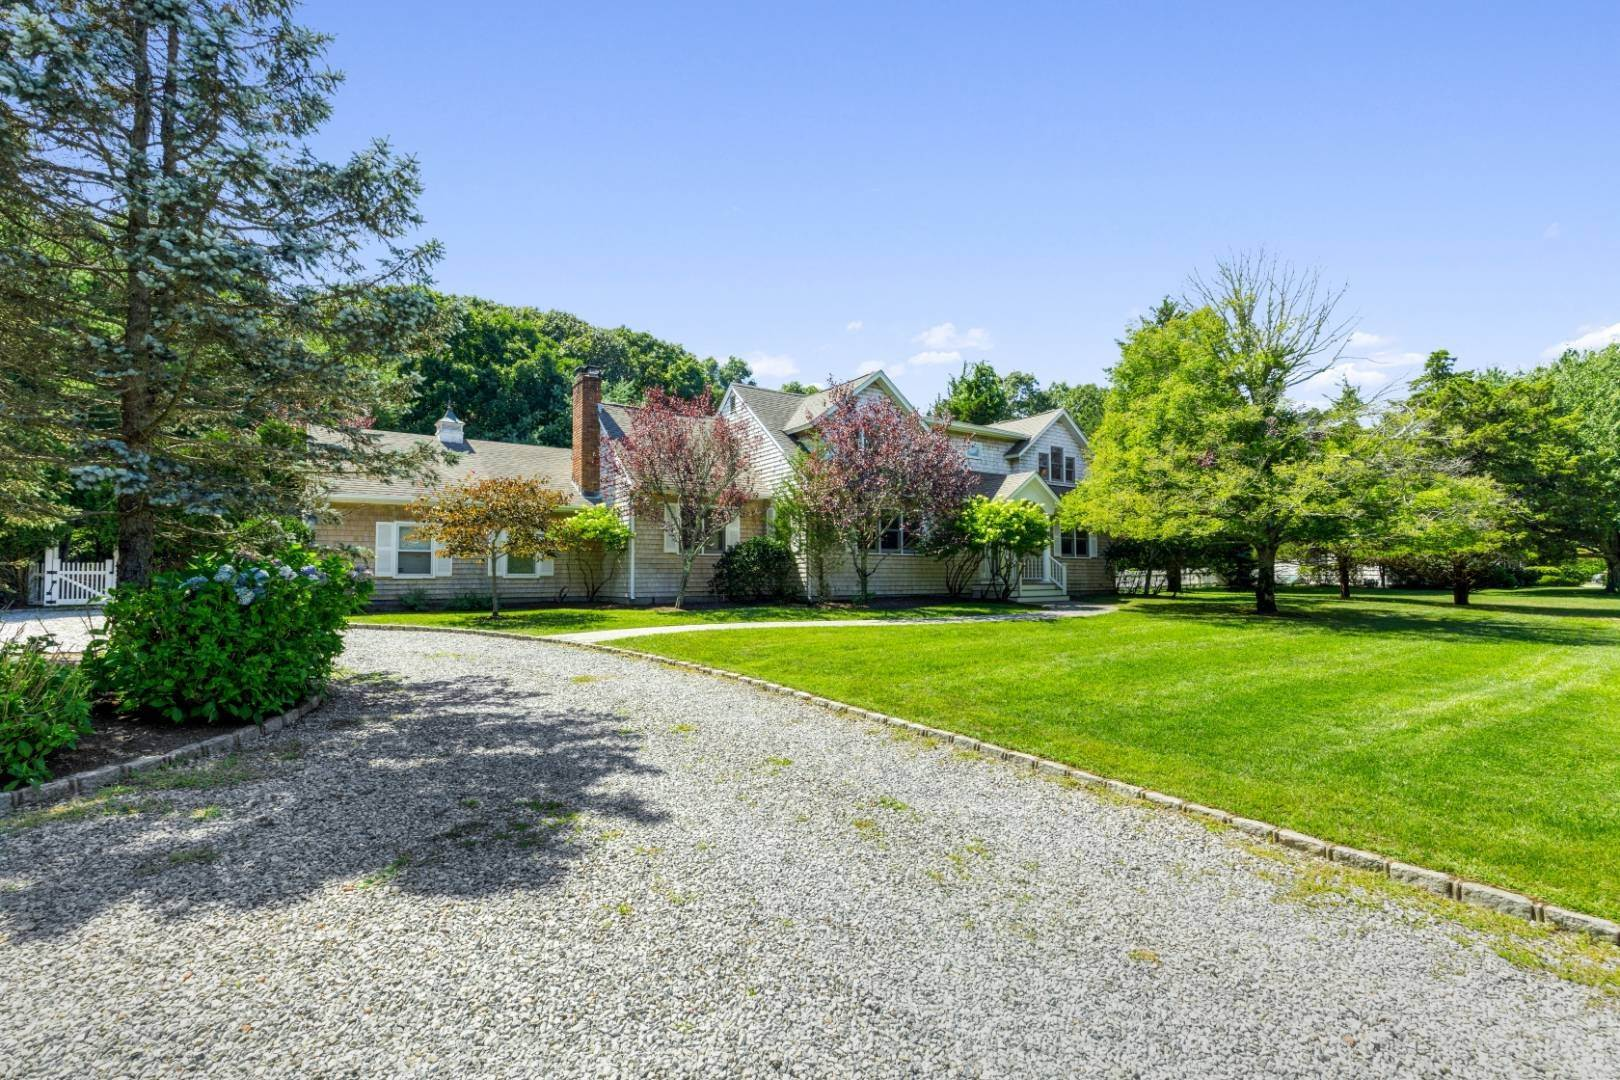 Single Family Home at Fabulous Southampton Rental Sunny, Clean With Tennis Southampton, NY 11968